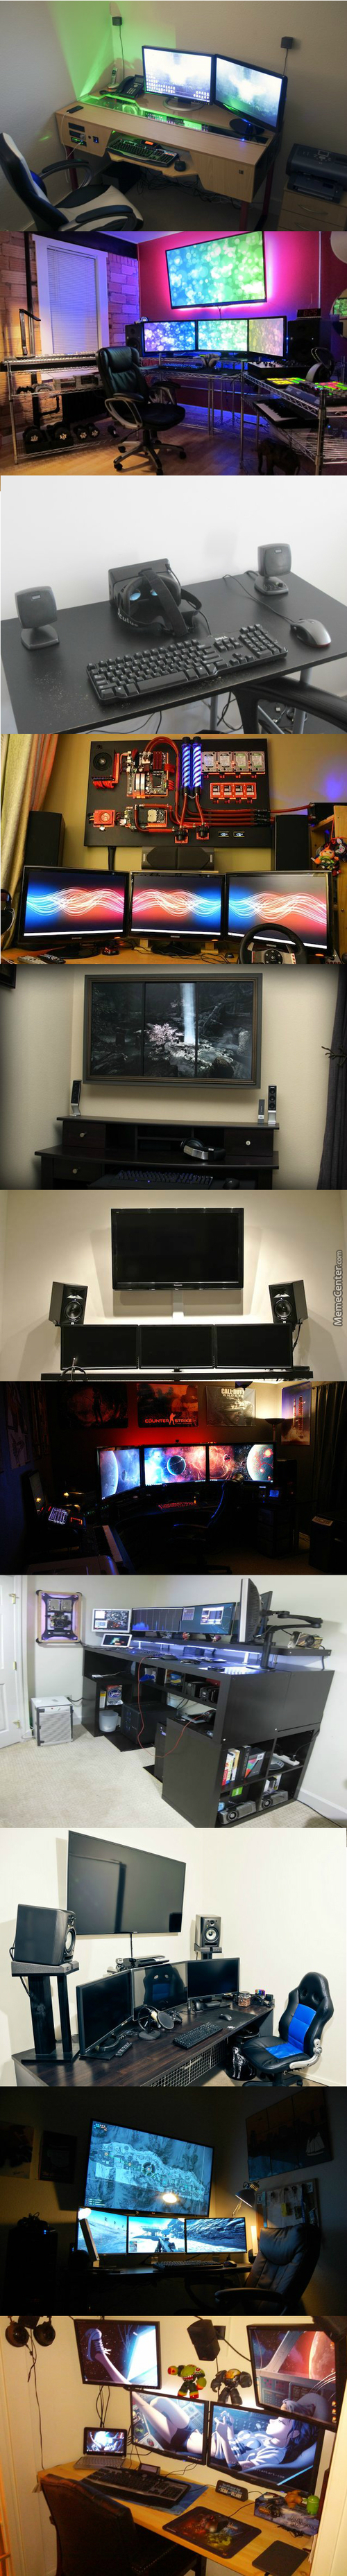 Awesome Battlestations That'll Blow Your Mind (Warning Long Post)